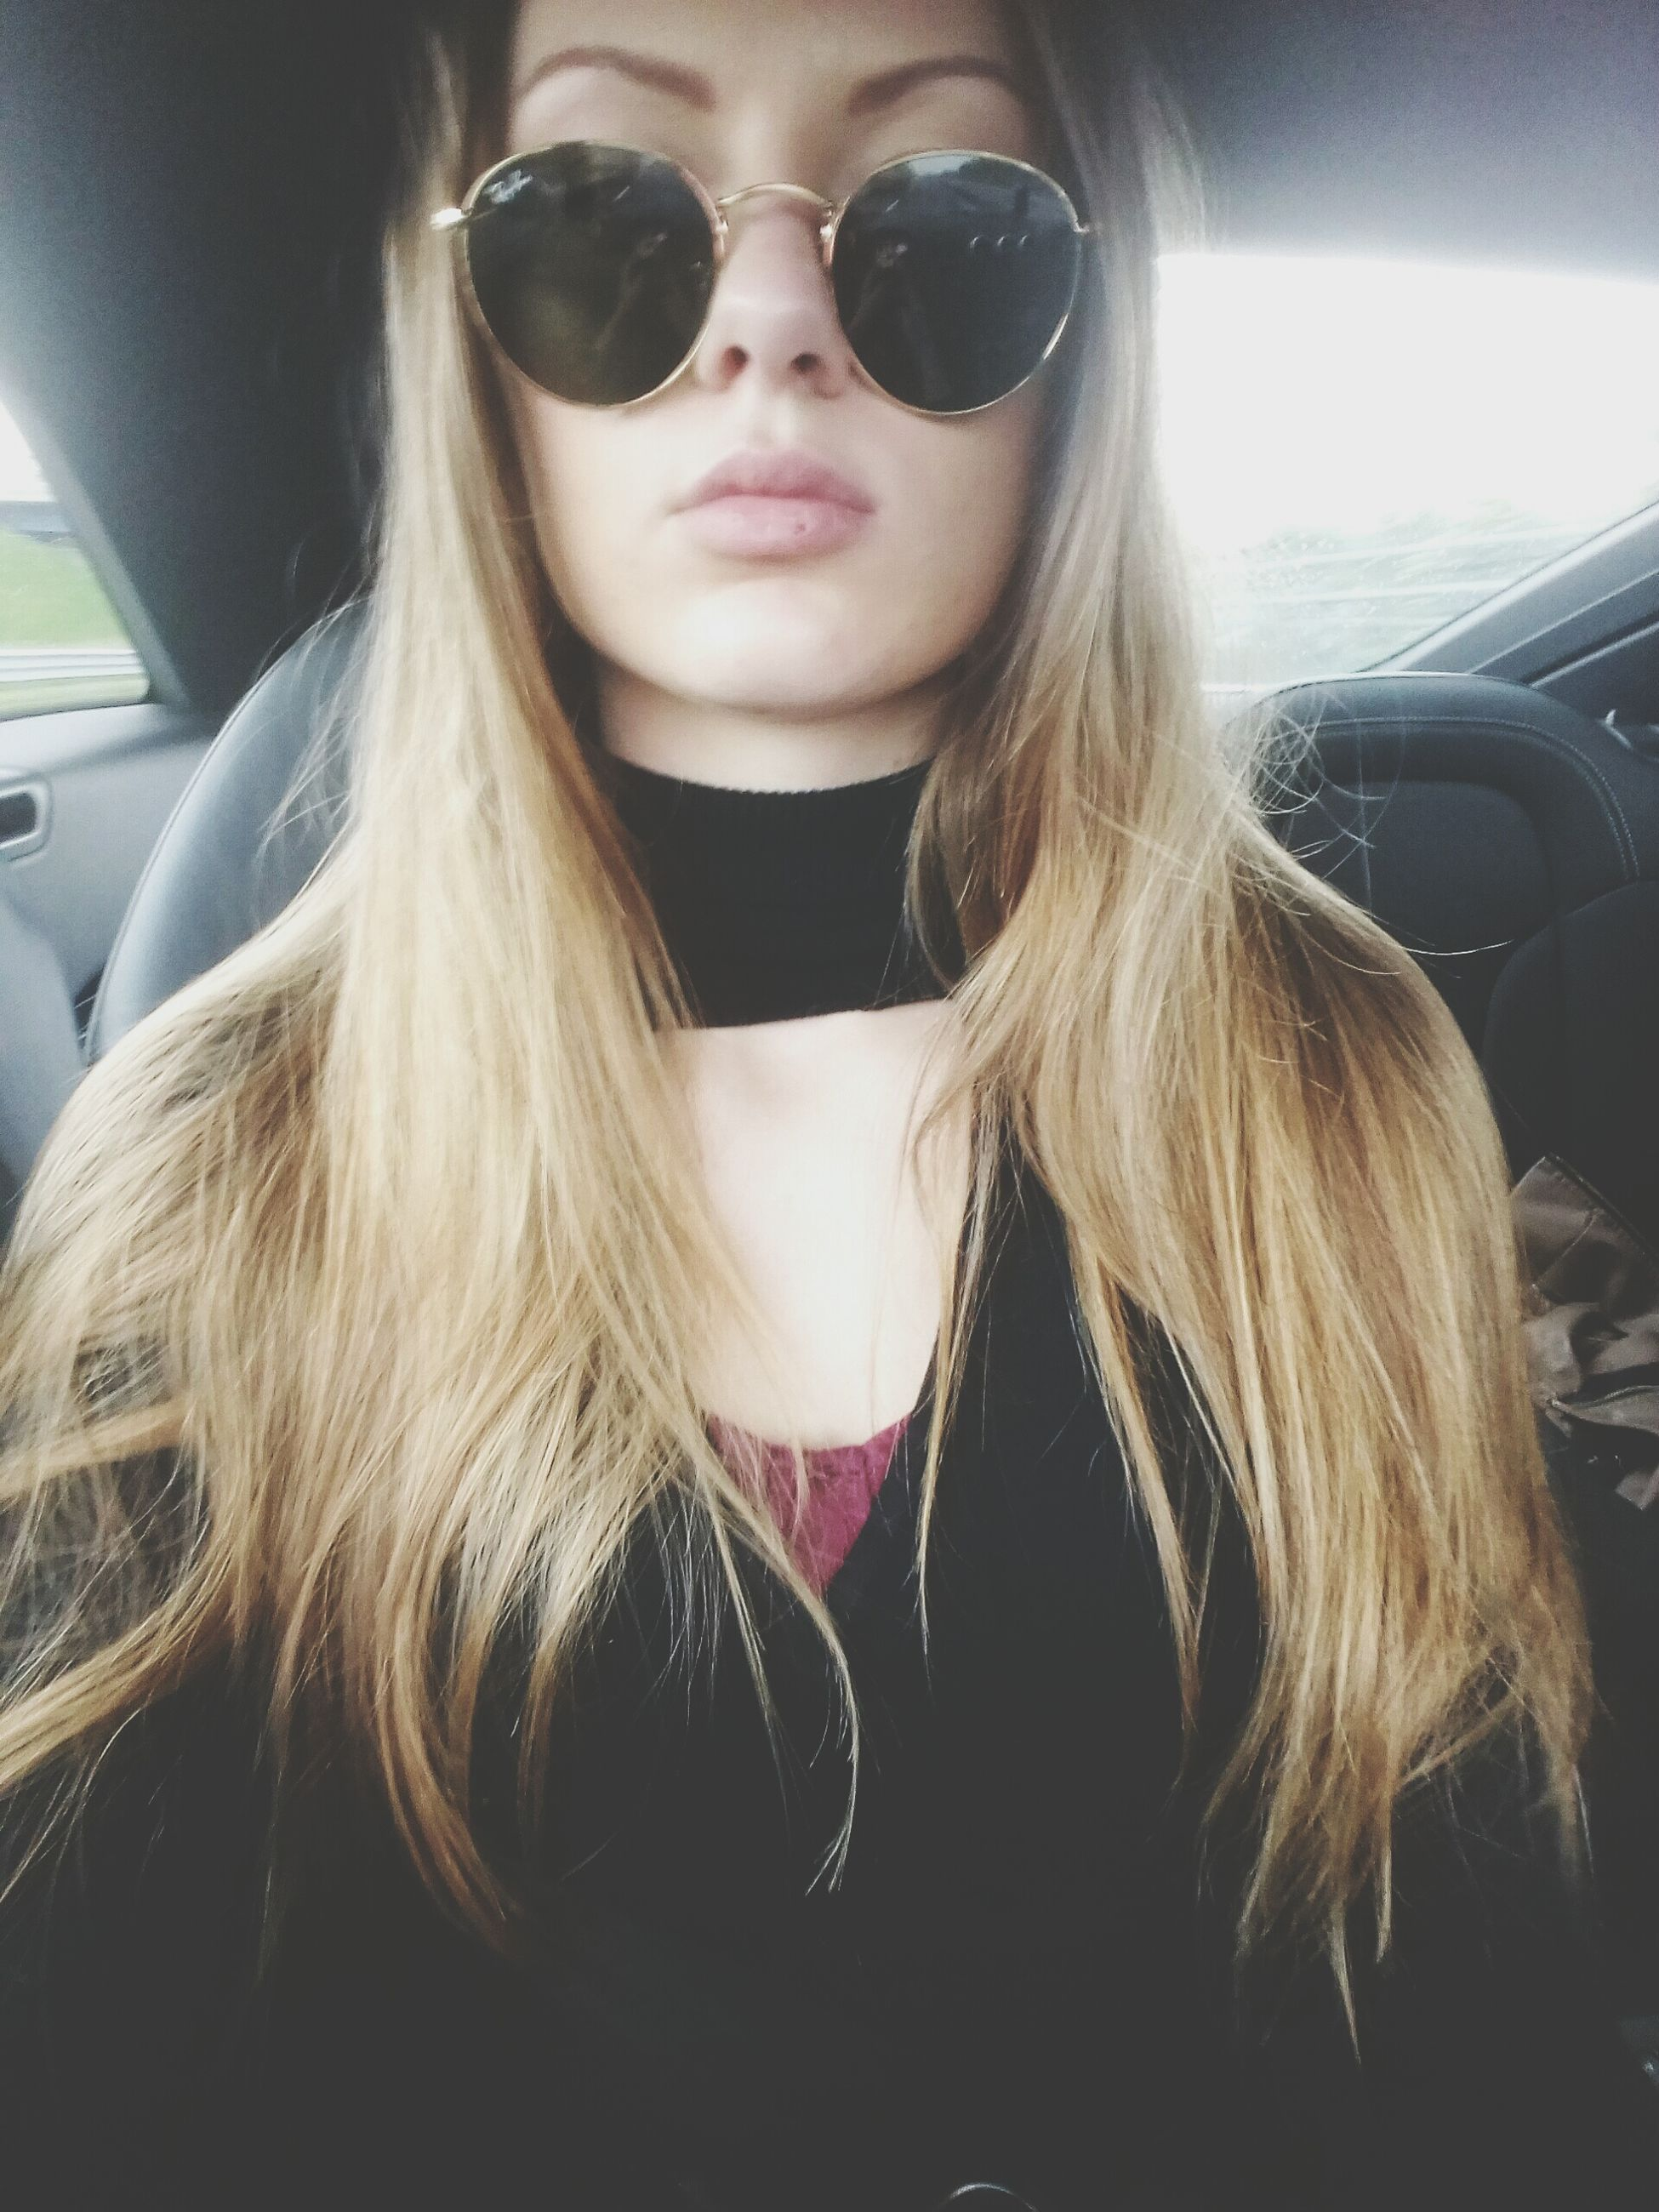 car, vehicle interior, car interior, transportation, land vehicle, mode of transport, one person, real people, front view, looking at camera, long hair, young adult, young women, portrait, lifestyles, day, beautiful woman, close-up, blond hair, outdoors